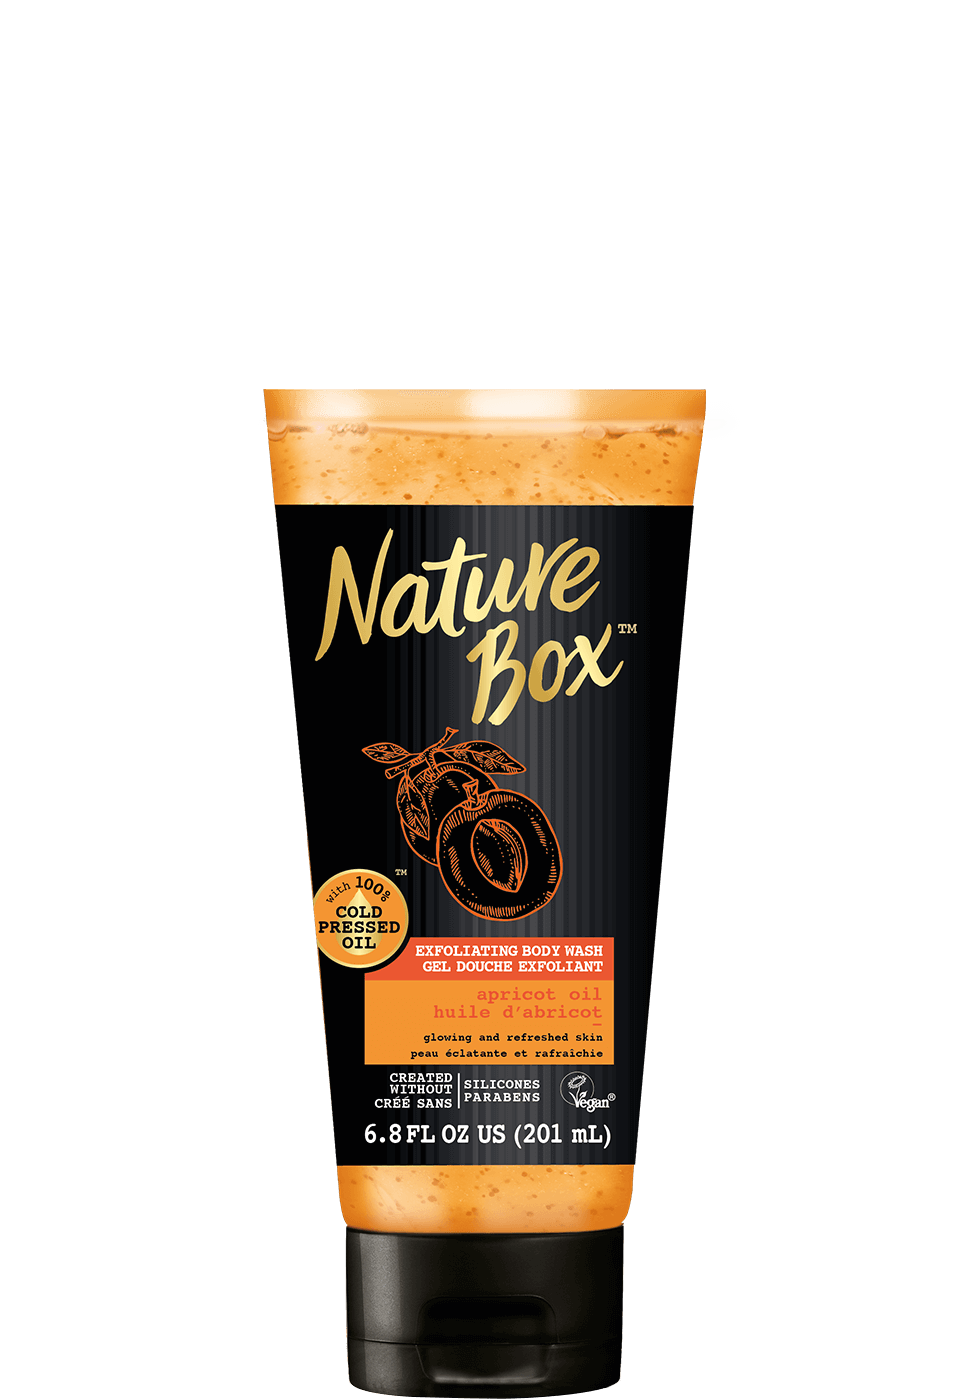 naturebox_us_apricot_exfoliating_body_wash_970x1400